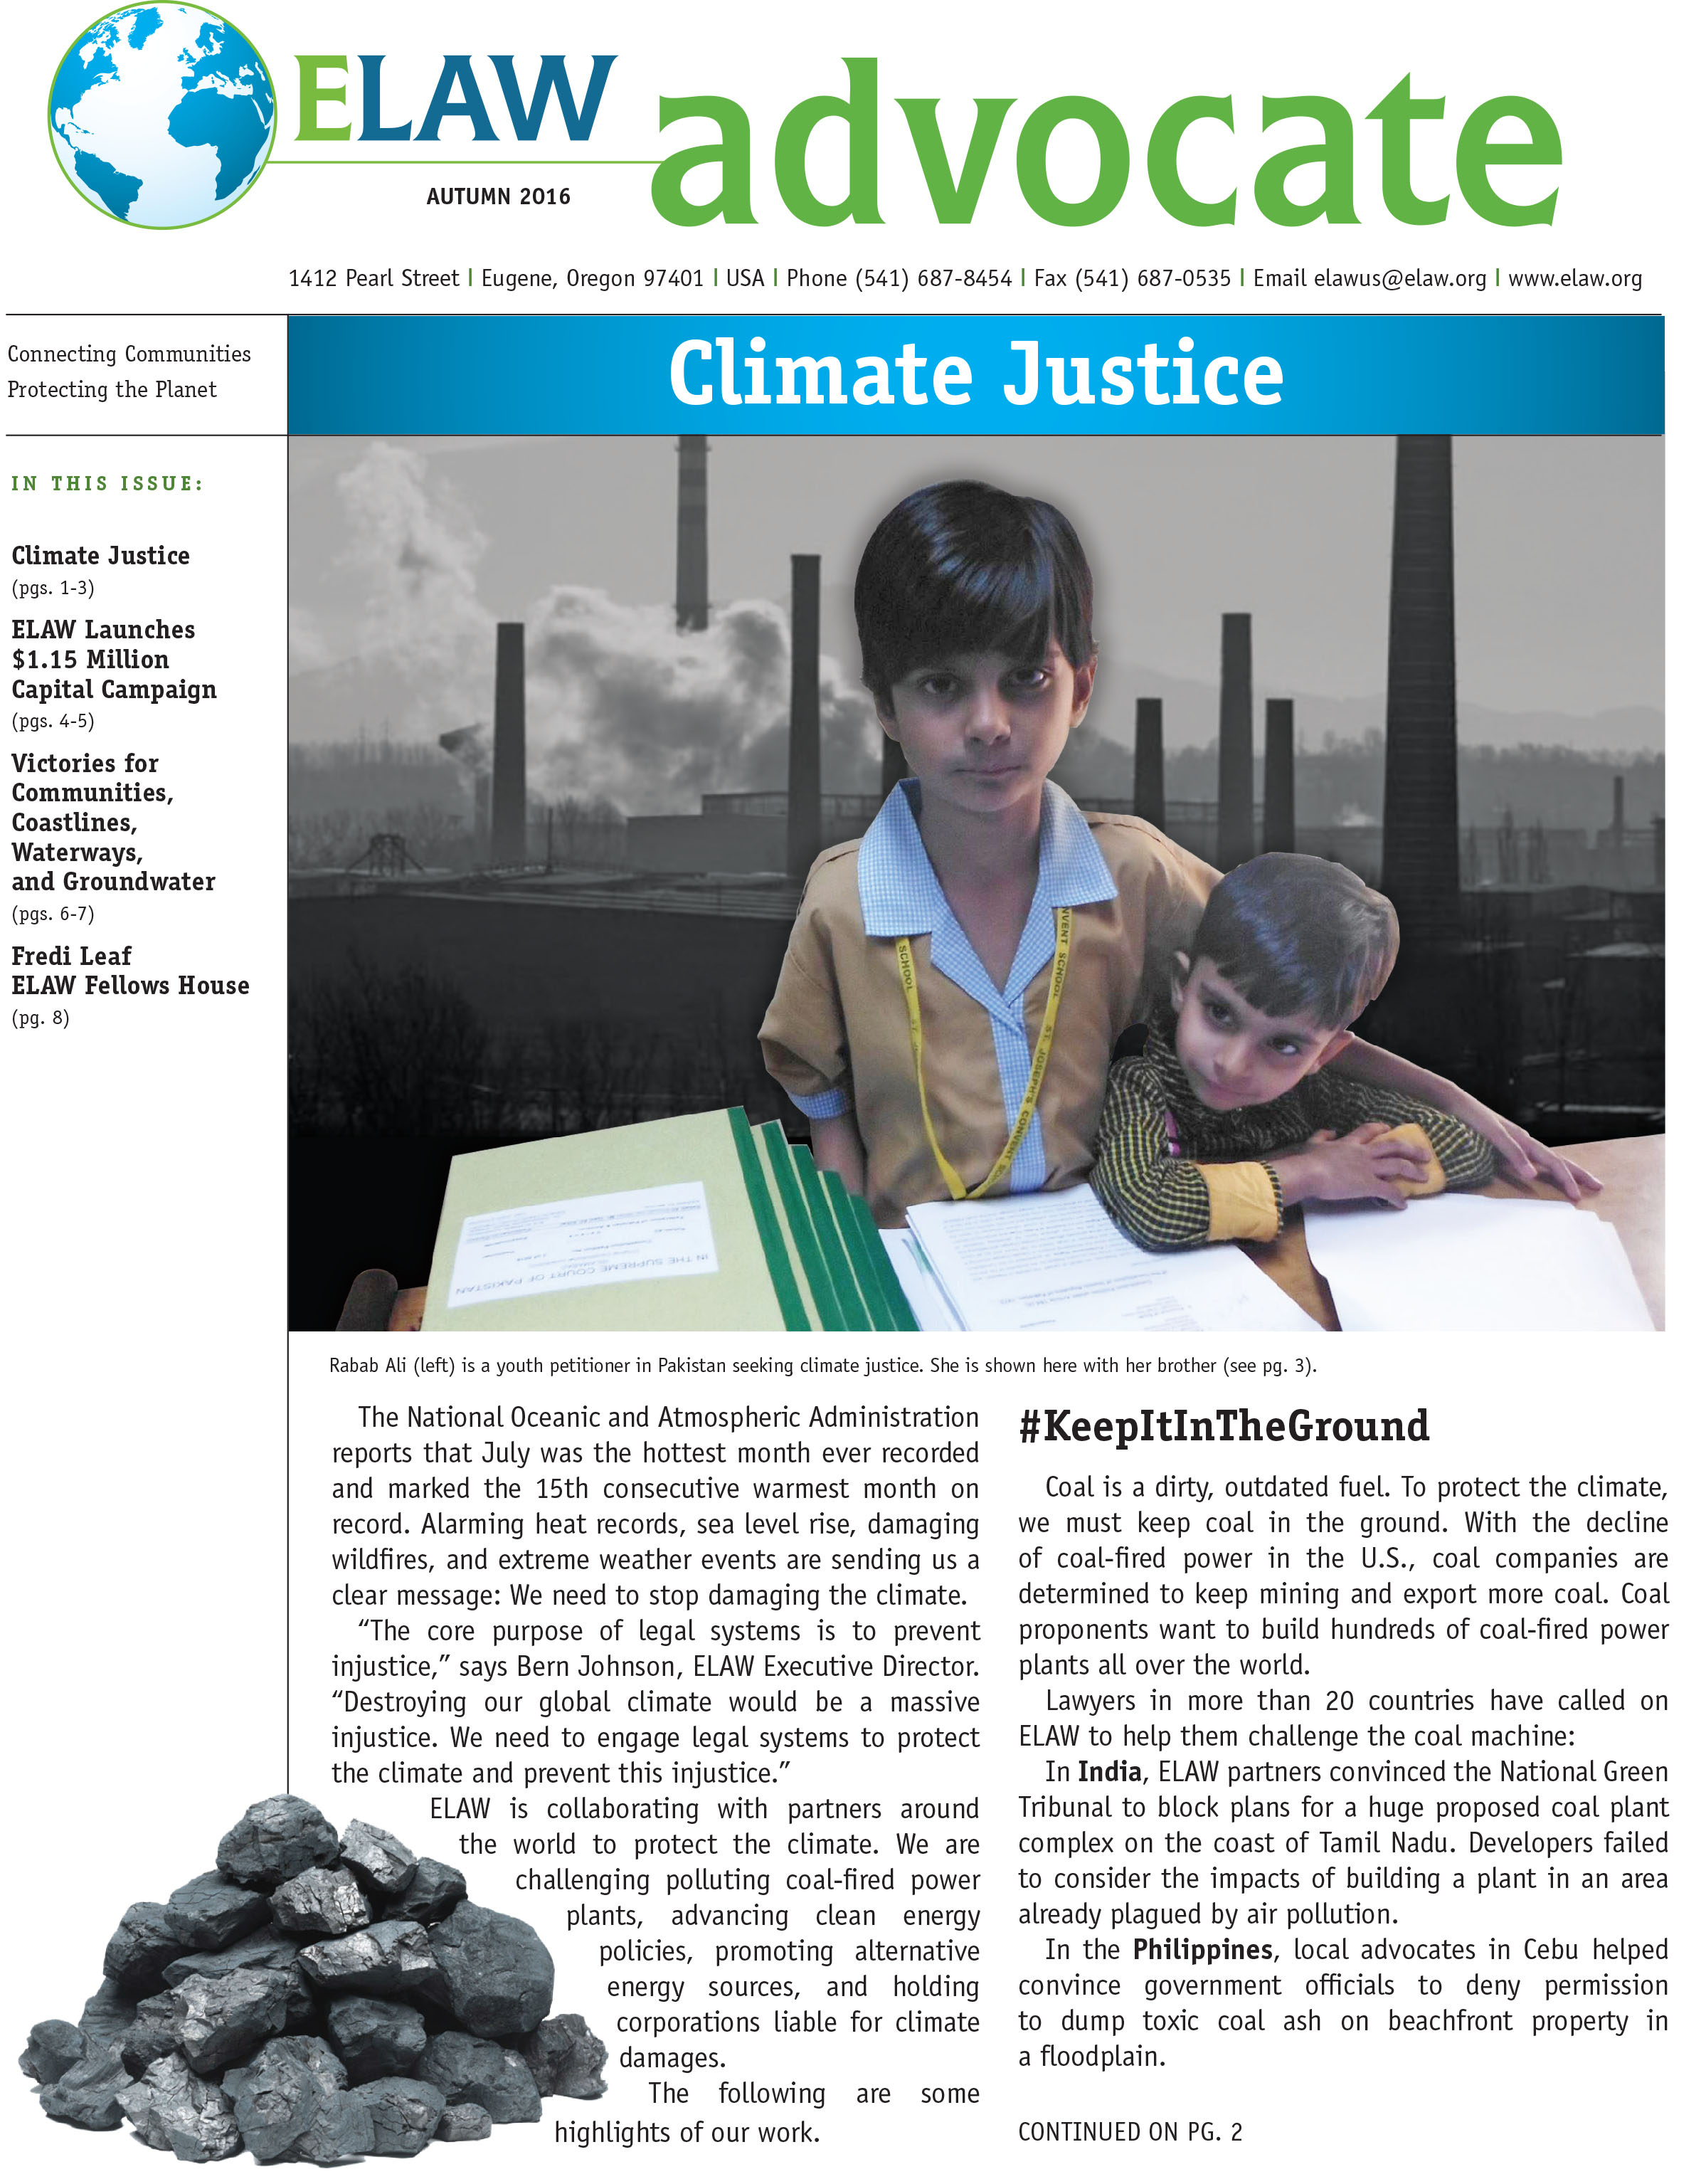 Advocate, Autumn 2016